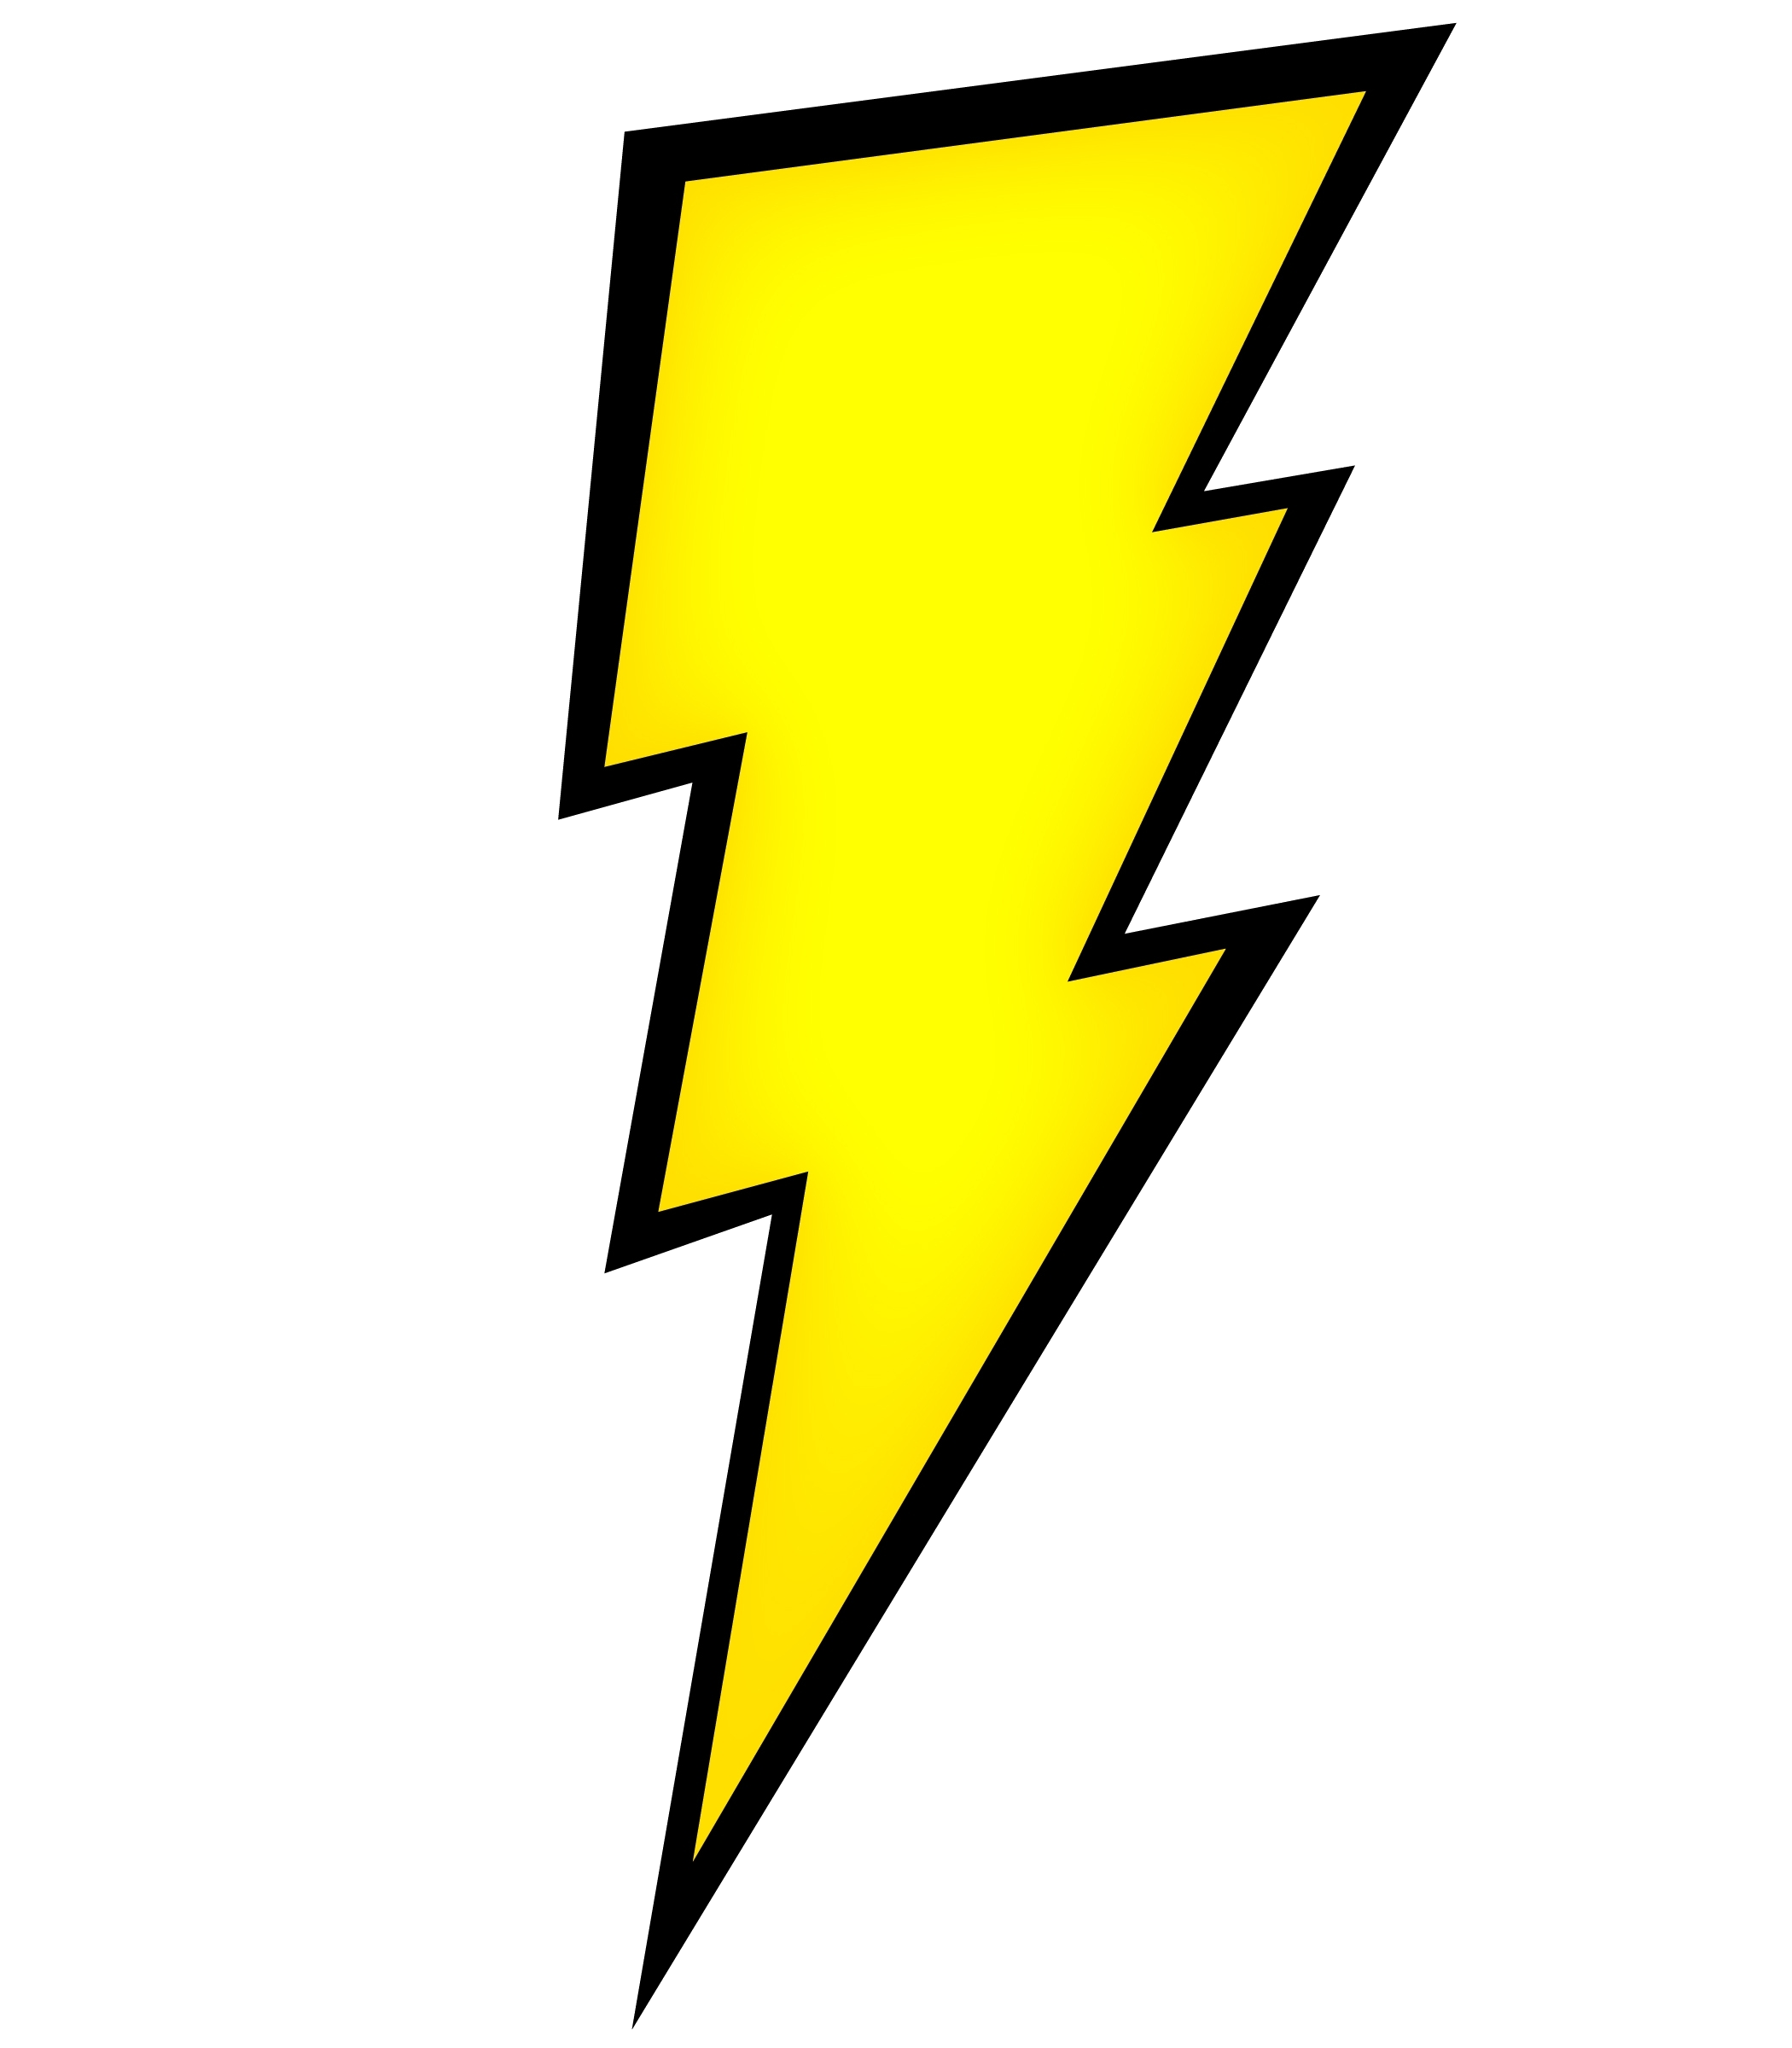 Free lightning clipart to use for commercial use. Png image purepng transparent